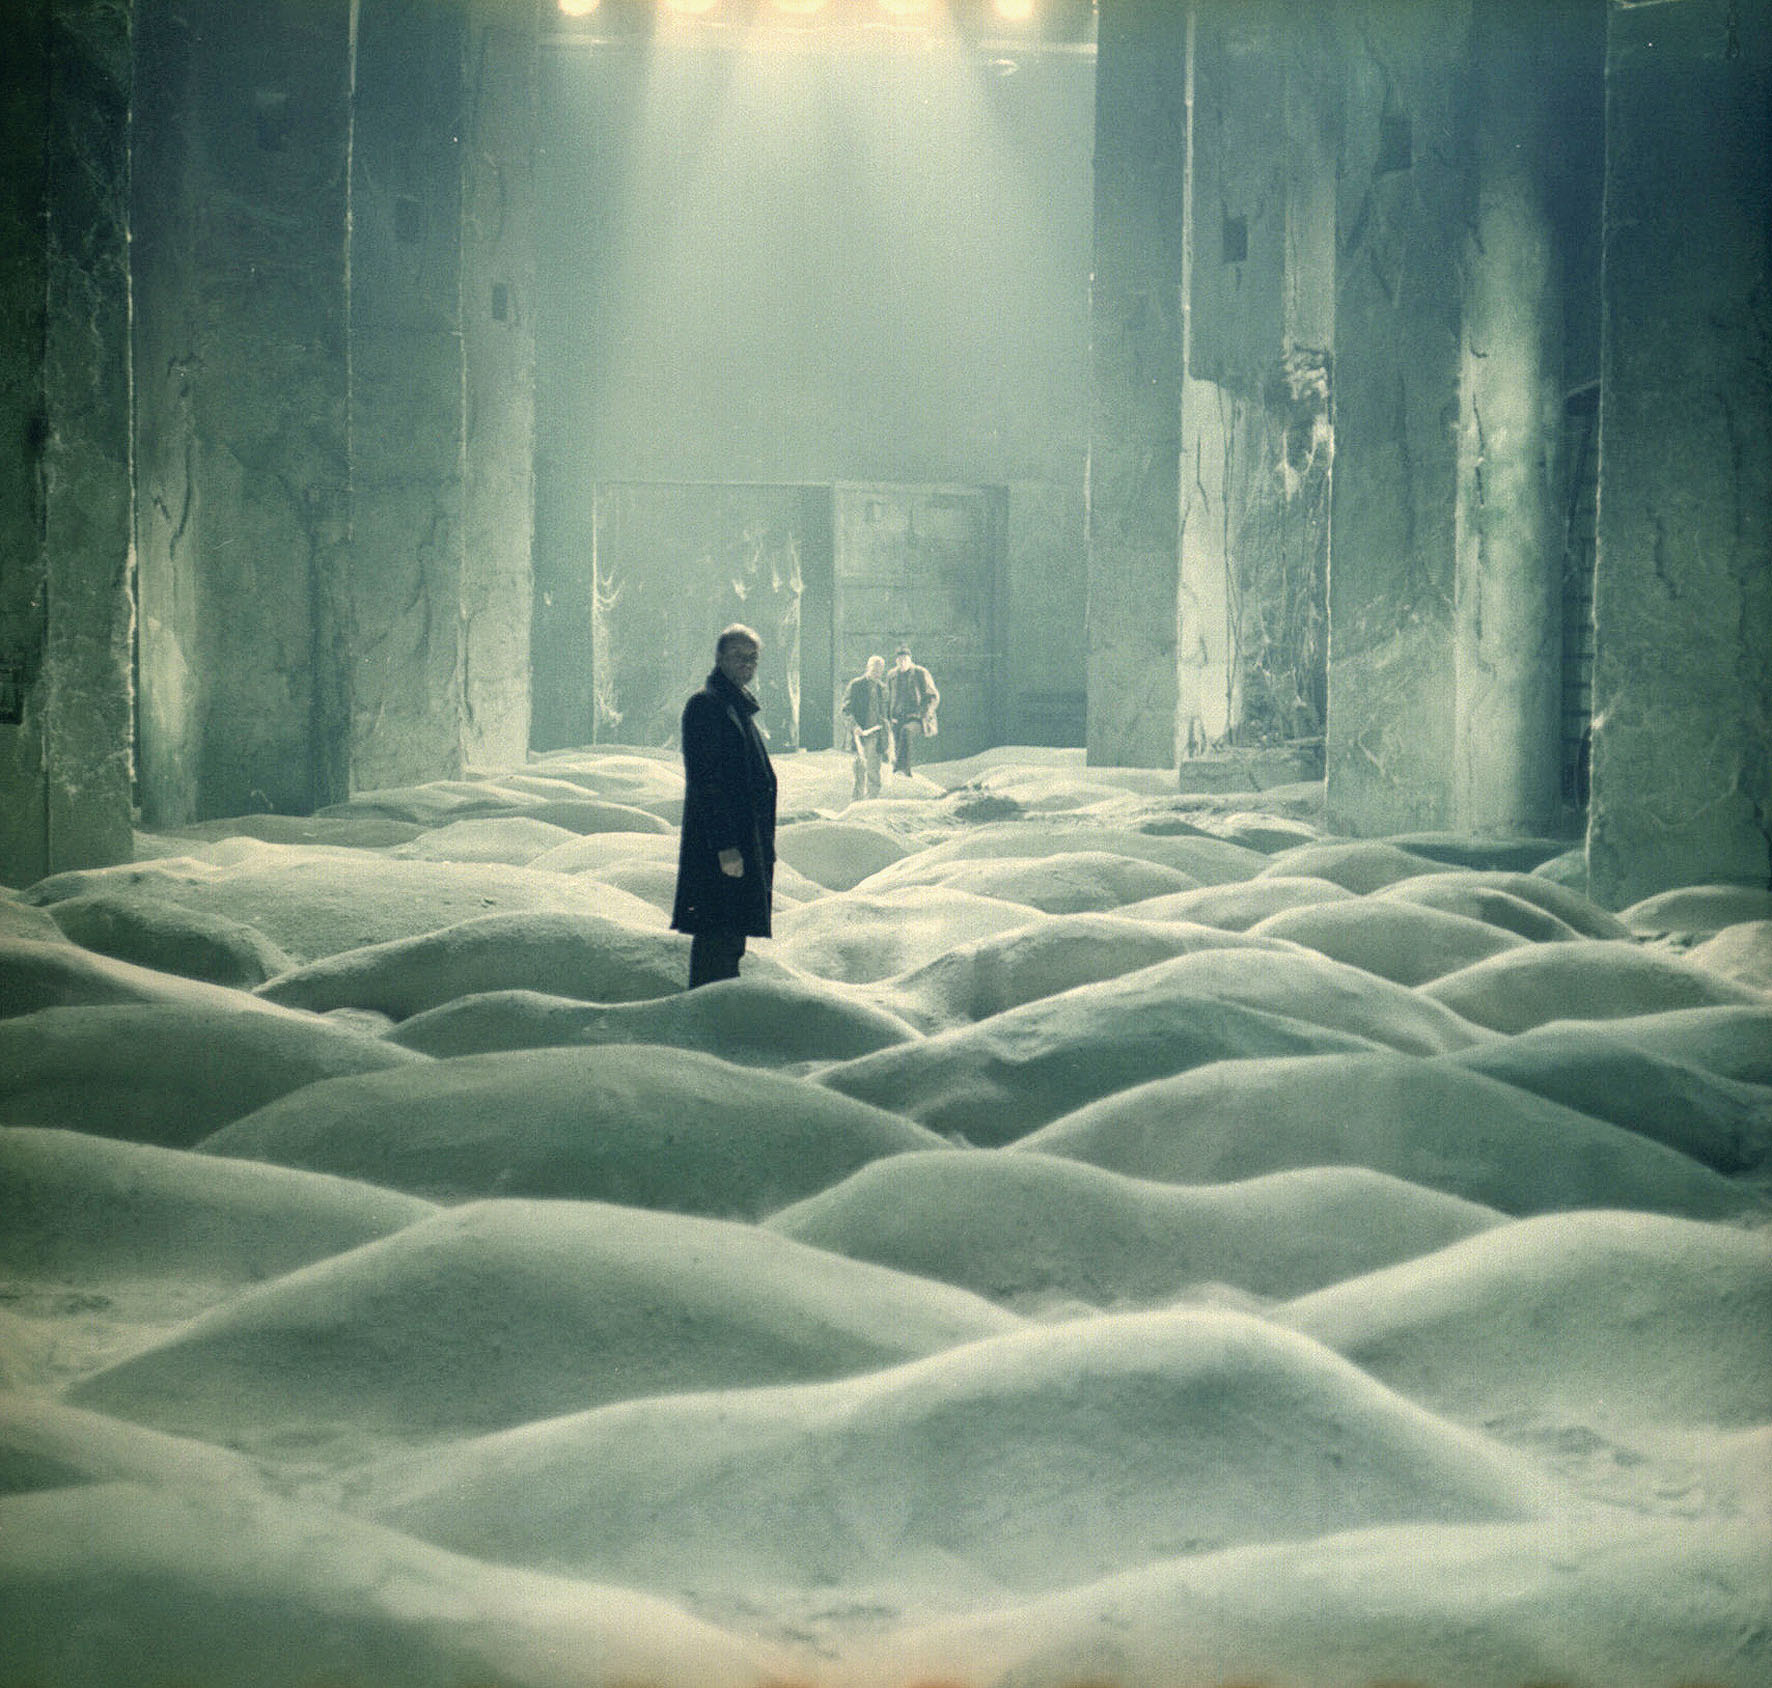 All Things Fair Movie Free Online tarkovsky films now free online | open culture